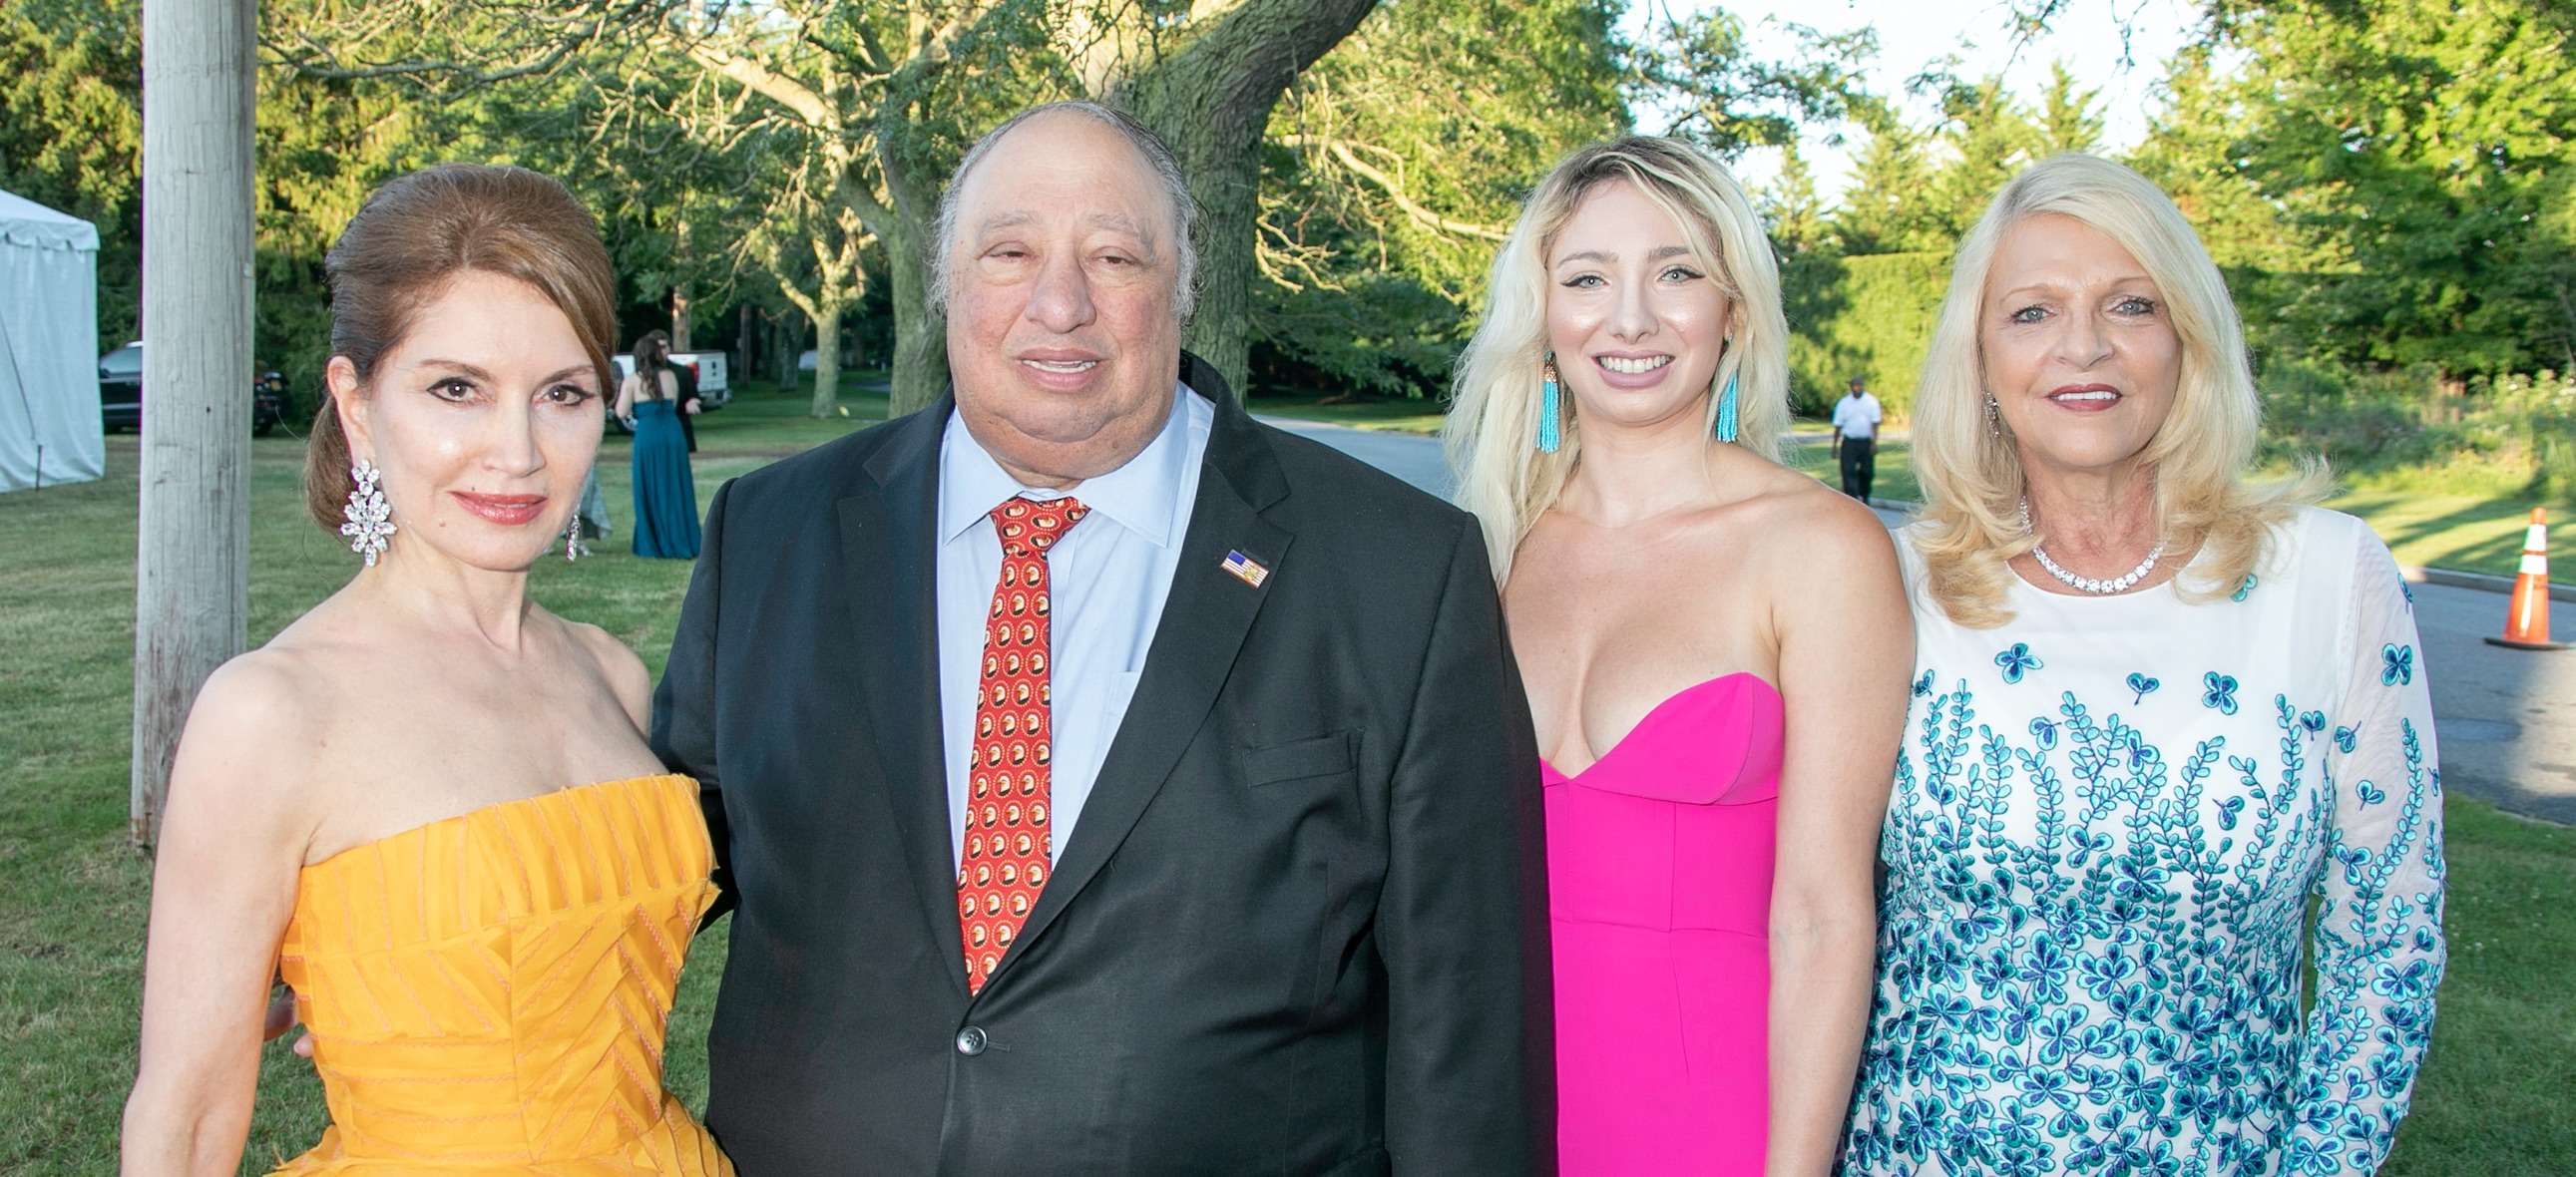 Featured - Jean Shafiroff, John Catsimatidis, Andrea Catsimatidis and Margo Catsimatidis